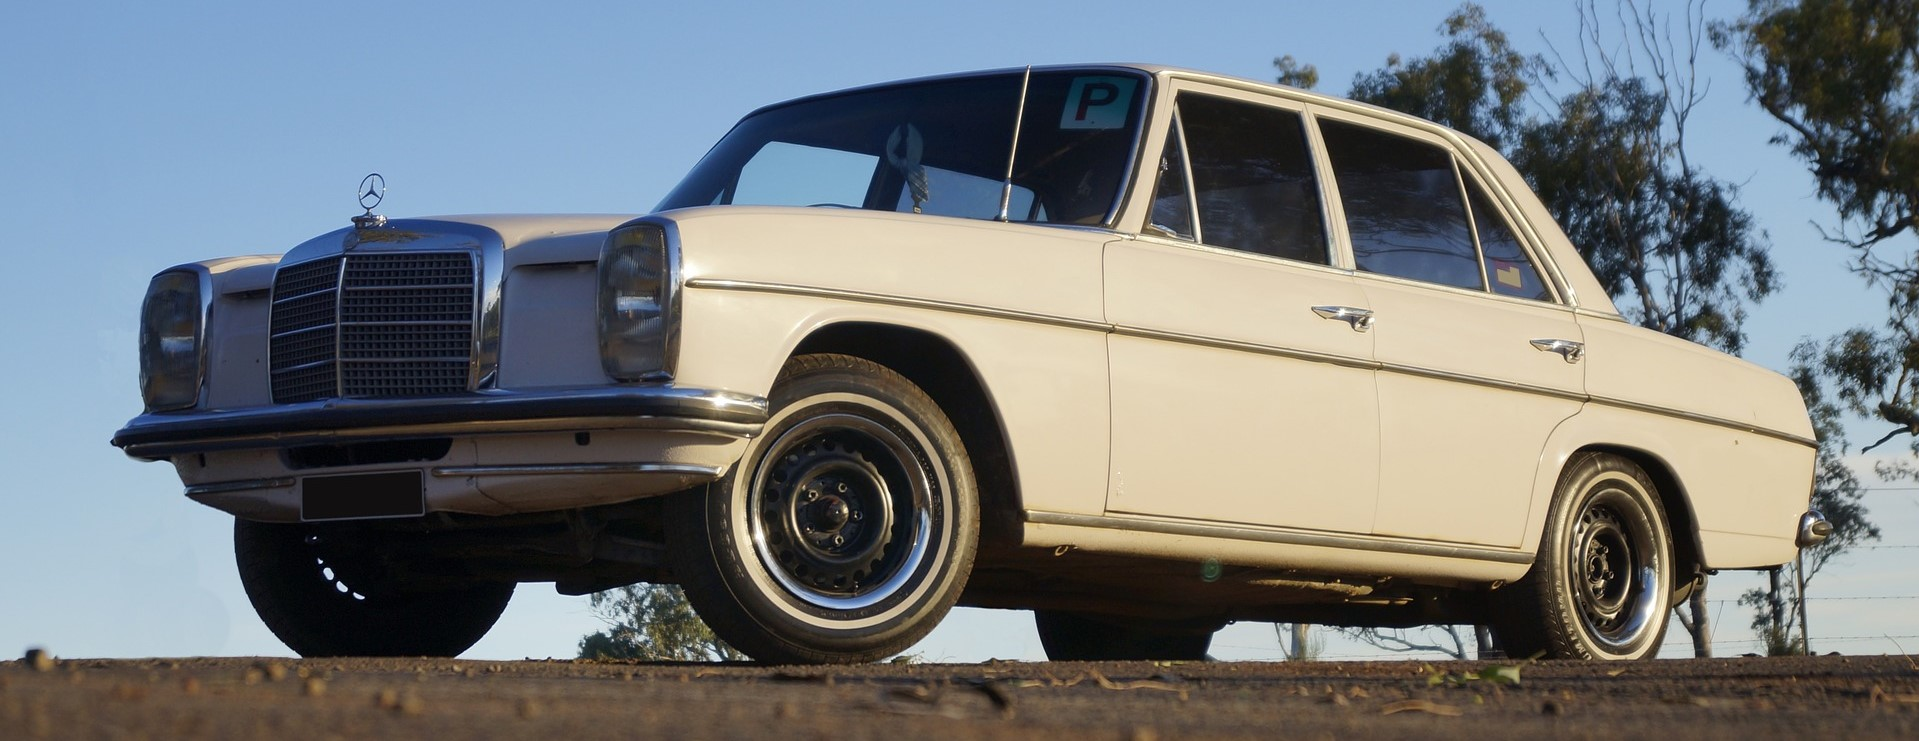 Old Mercedes in Thousand Oaks California - CarDonations4Cancer.org